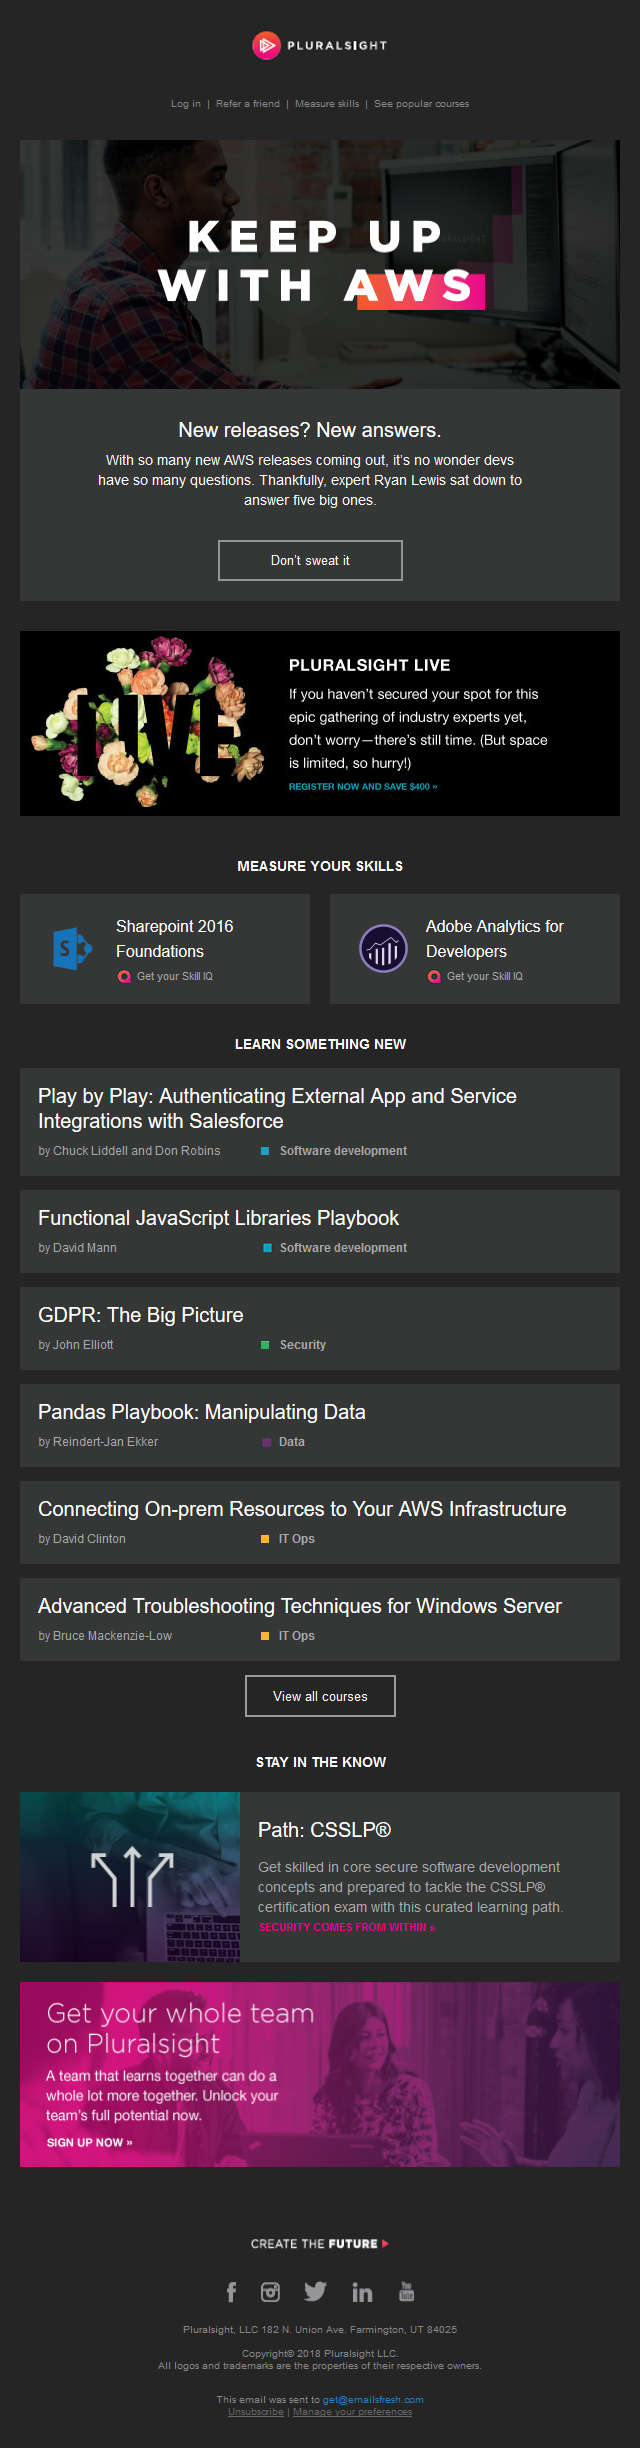 New from Pluralsight: Struggling to keep up with AWS updates? We've got your back.